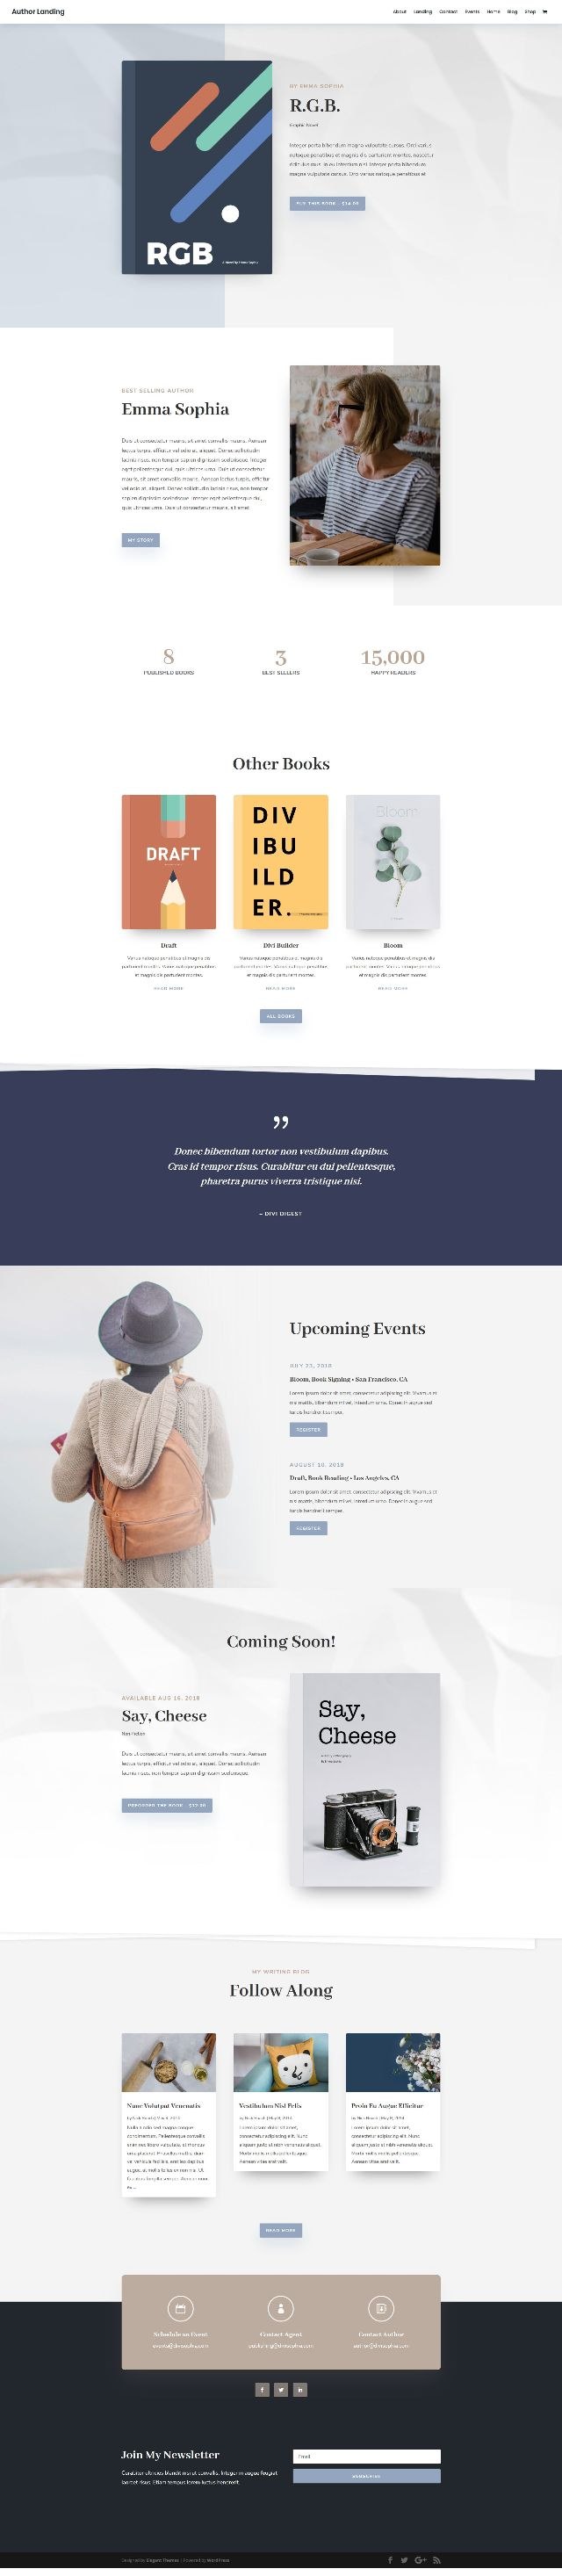 FREE Author Layout Pack Landing Page